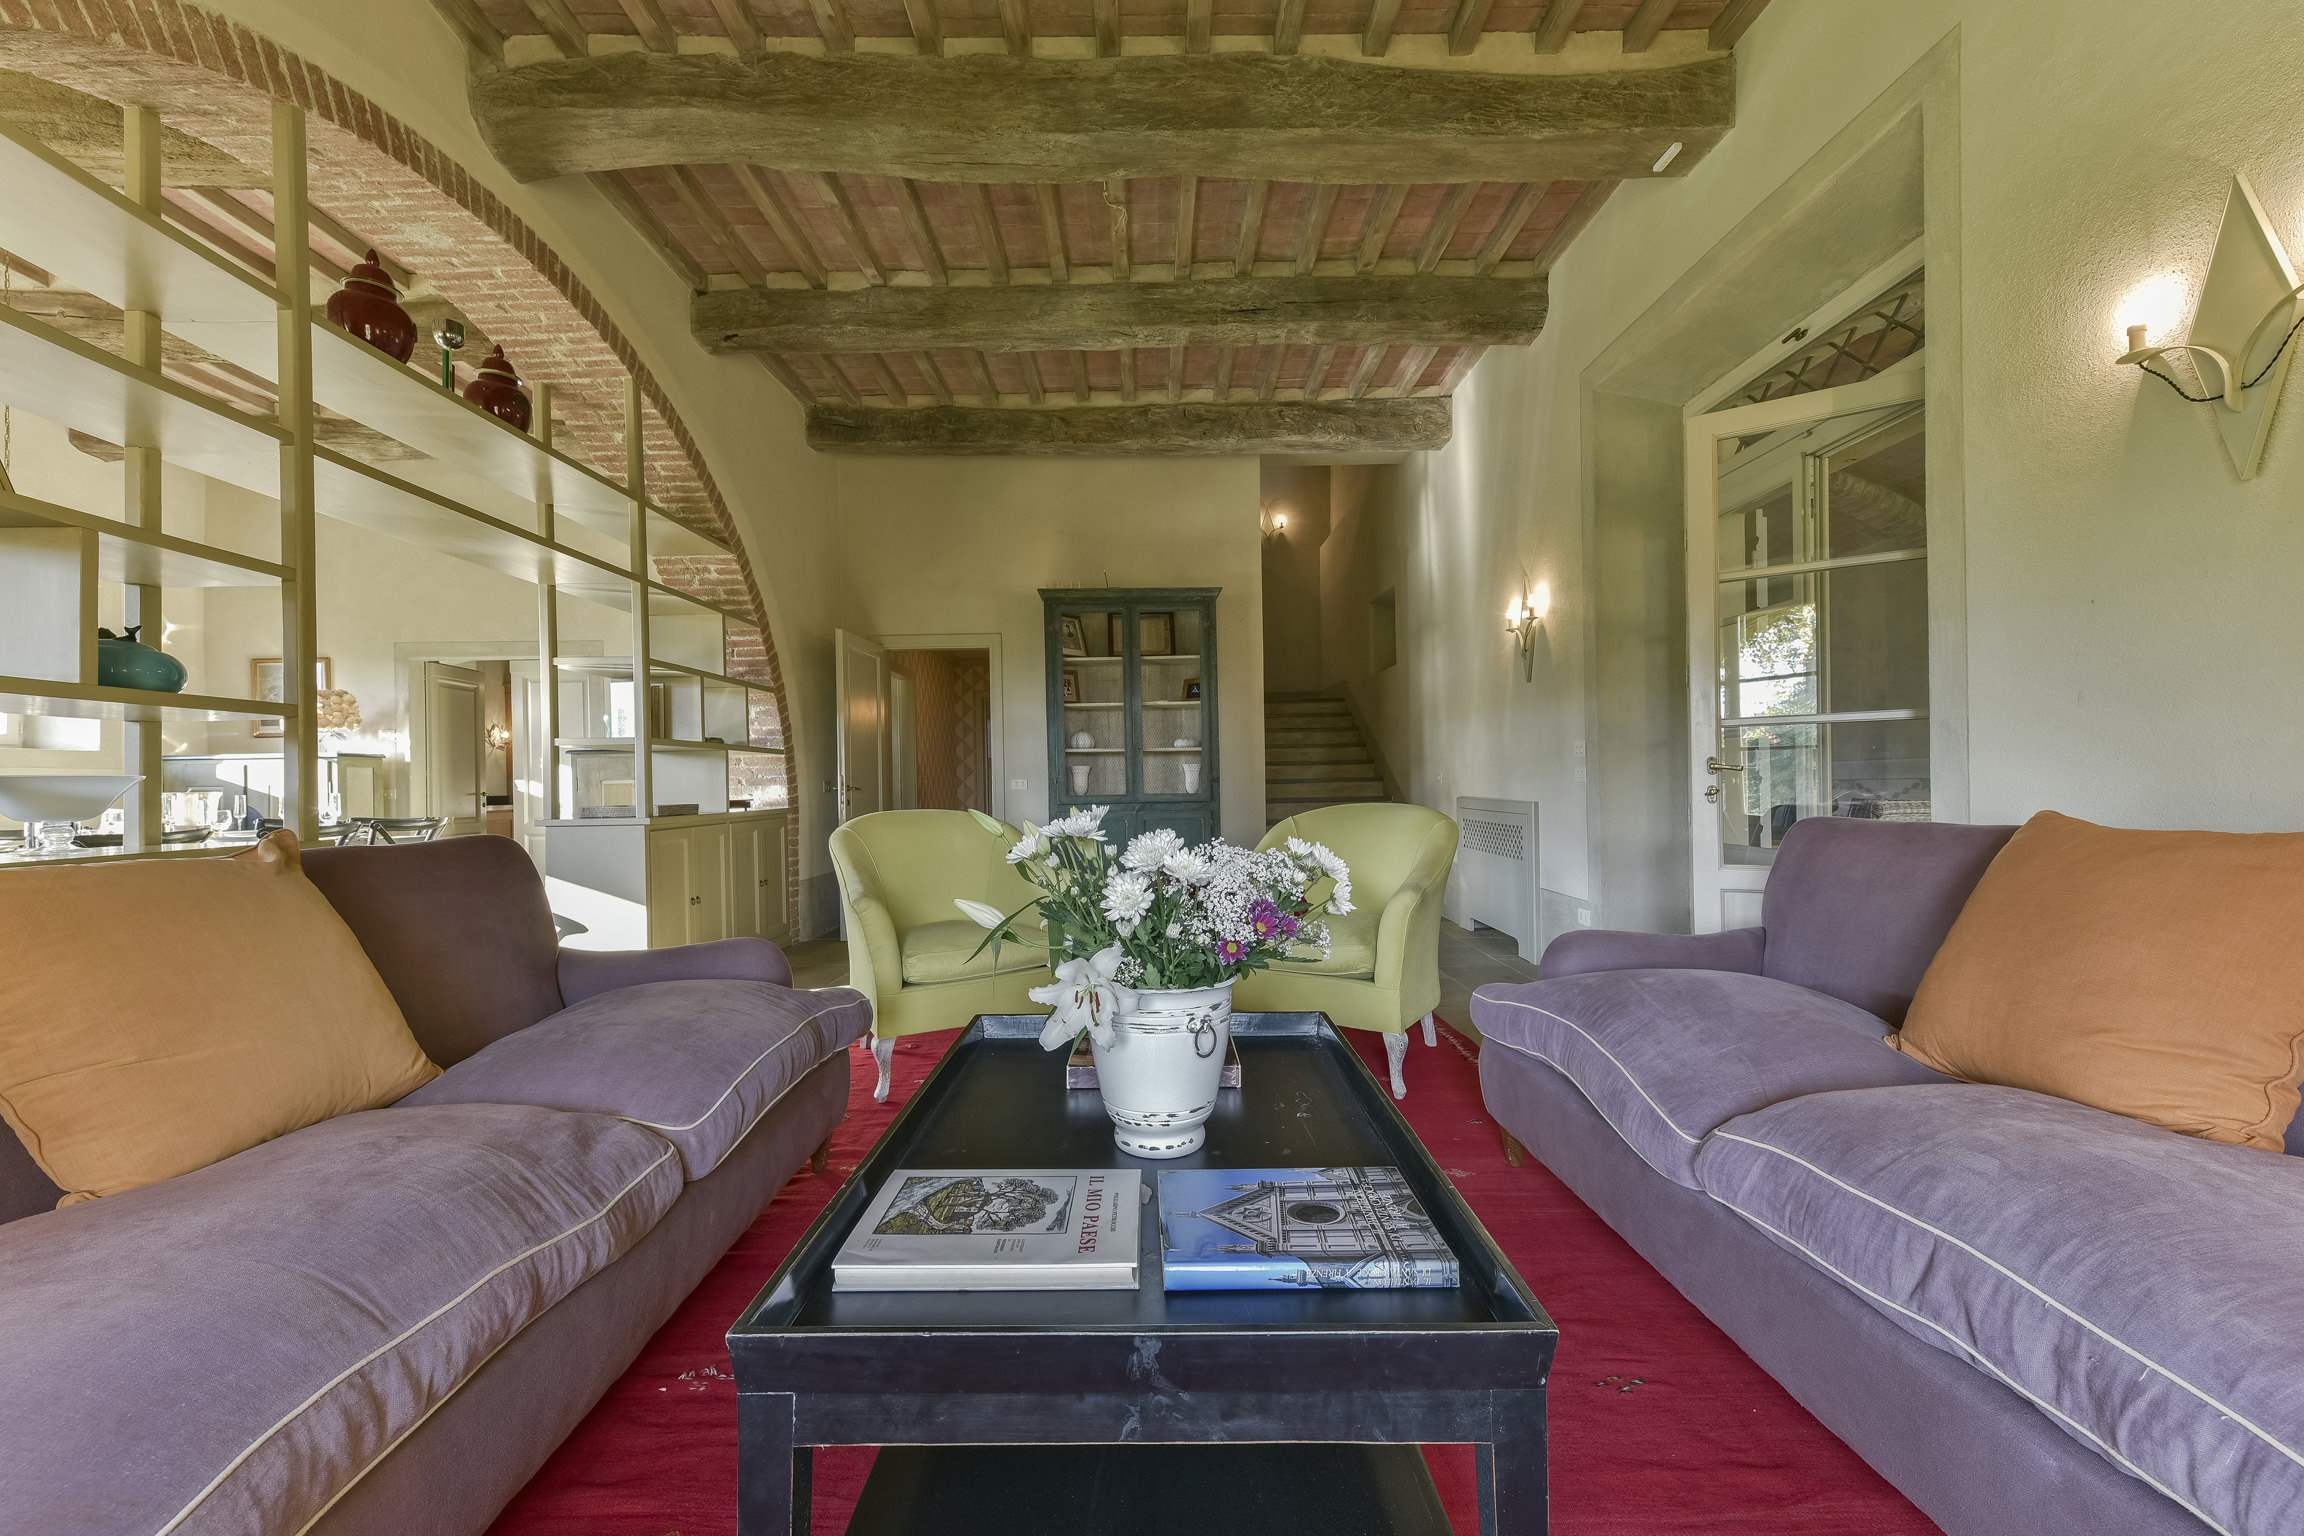 Villa Maremma 2, 9 bedroom villa in South Tuscany - Maremma, Tuscany Photo #14